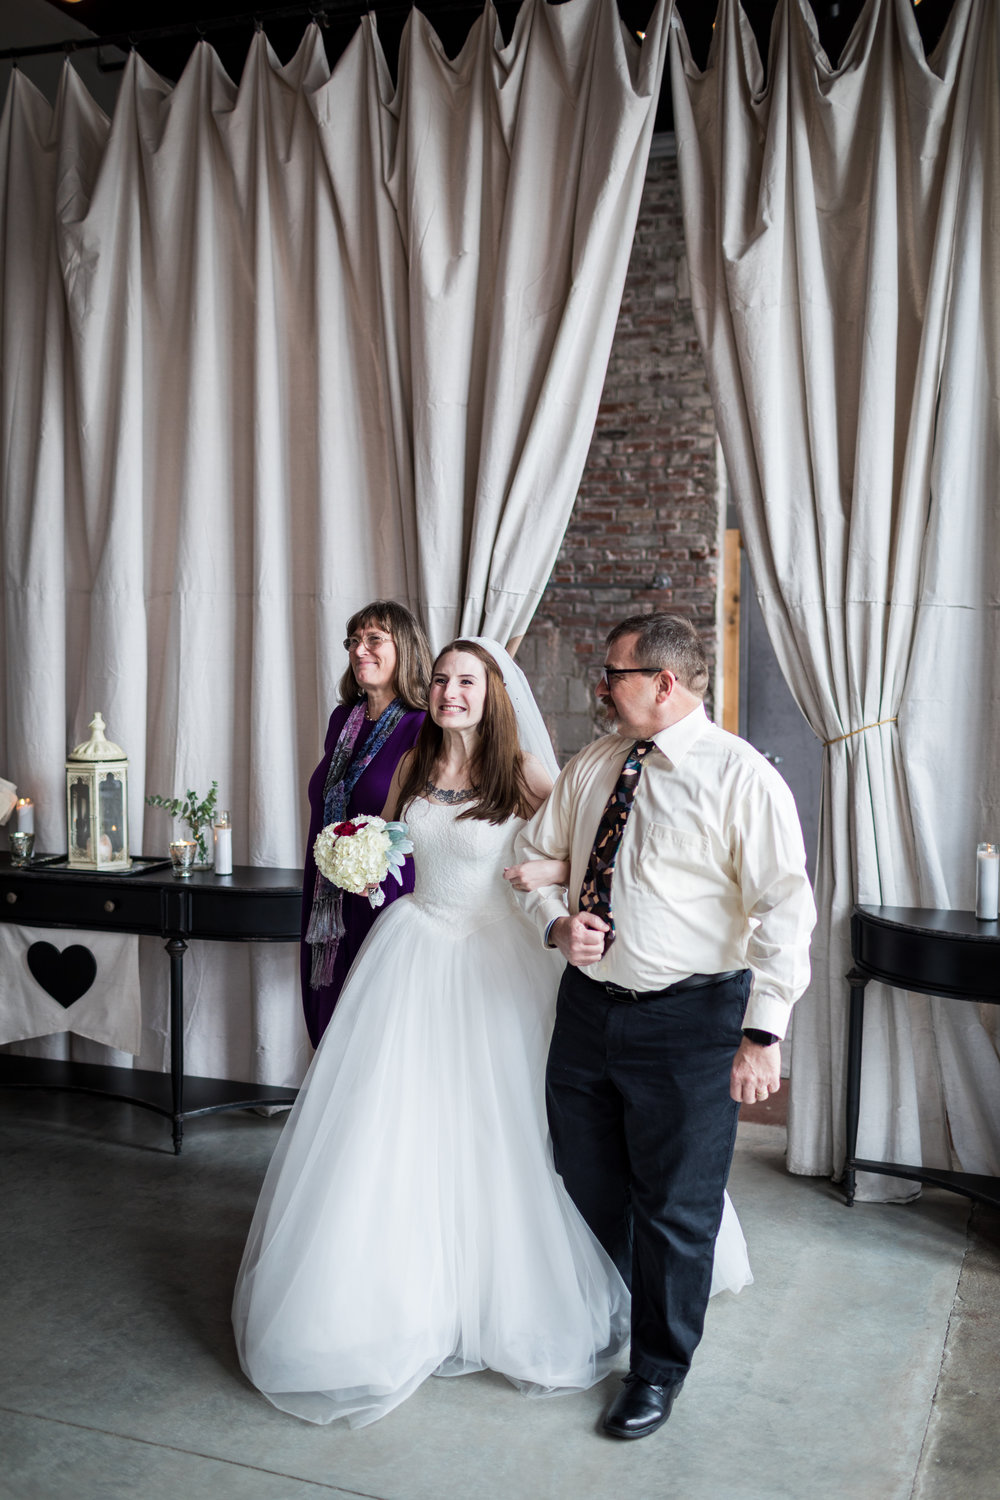 Kansas_City_Small_Wedding_Venue_Elope_Intimate_Ceremony_Budget_Affordable_15MinWedding-066.jpg